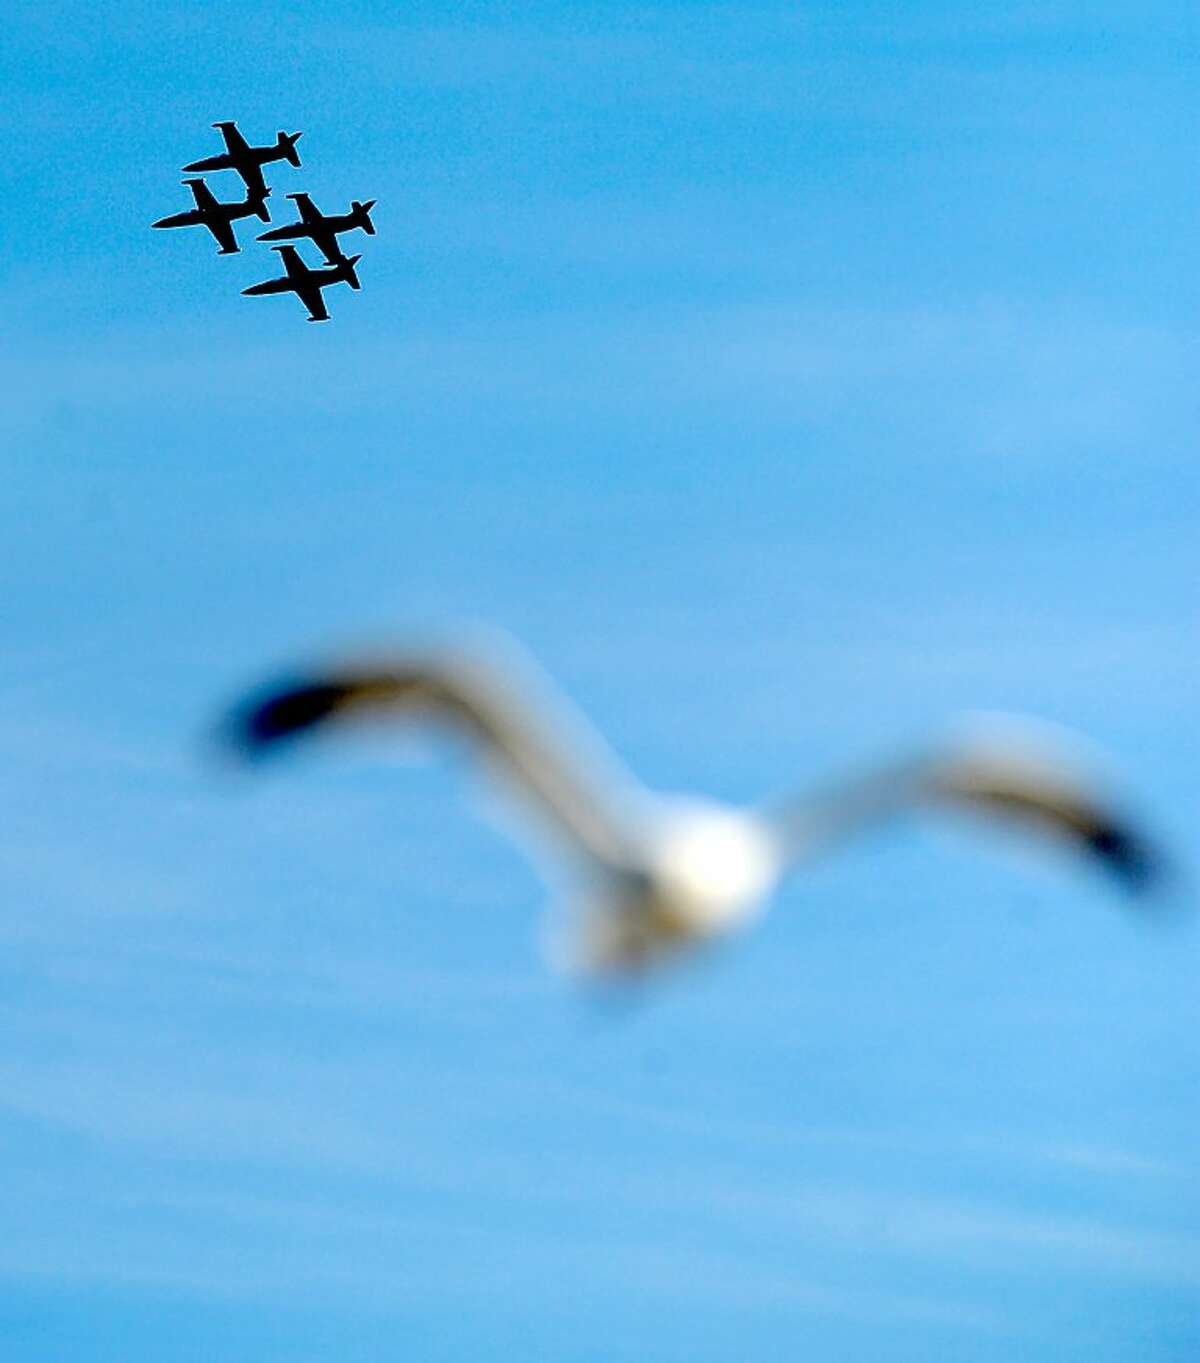 The Blue Angels fly pass a seagull on Saturday, Oct. 9, 2010, in San Francisco.